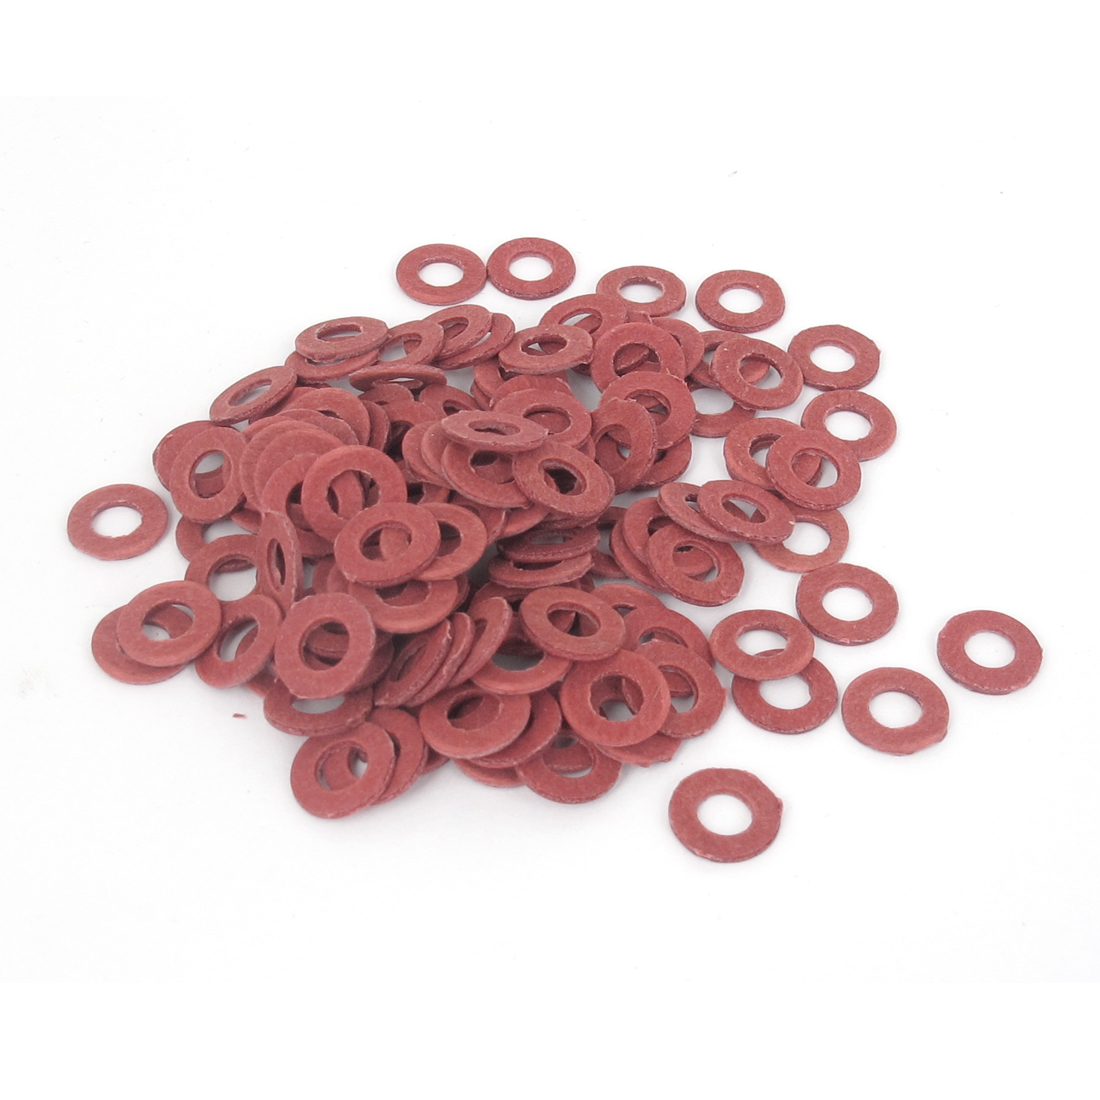 5mmx10mmx1mm Fiber Motherboard Insulating Pad Fastening Washer Red 100pcs